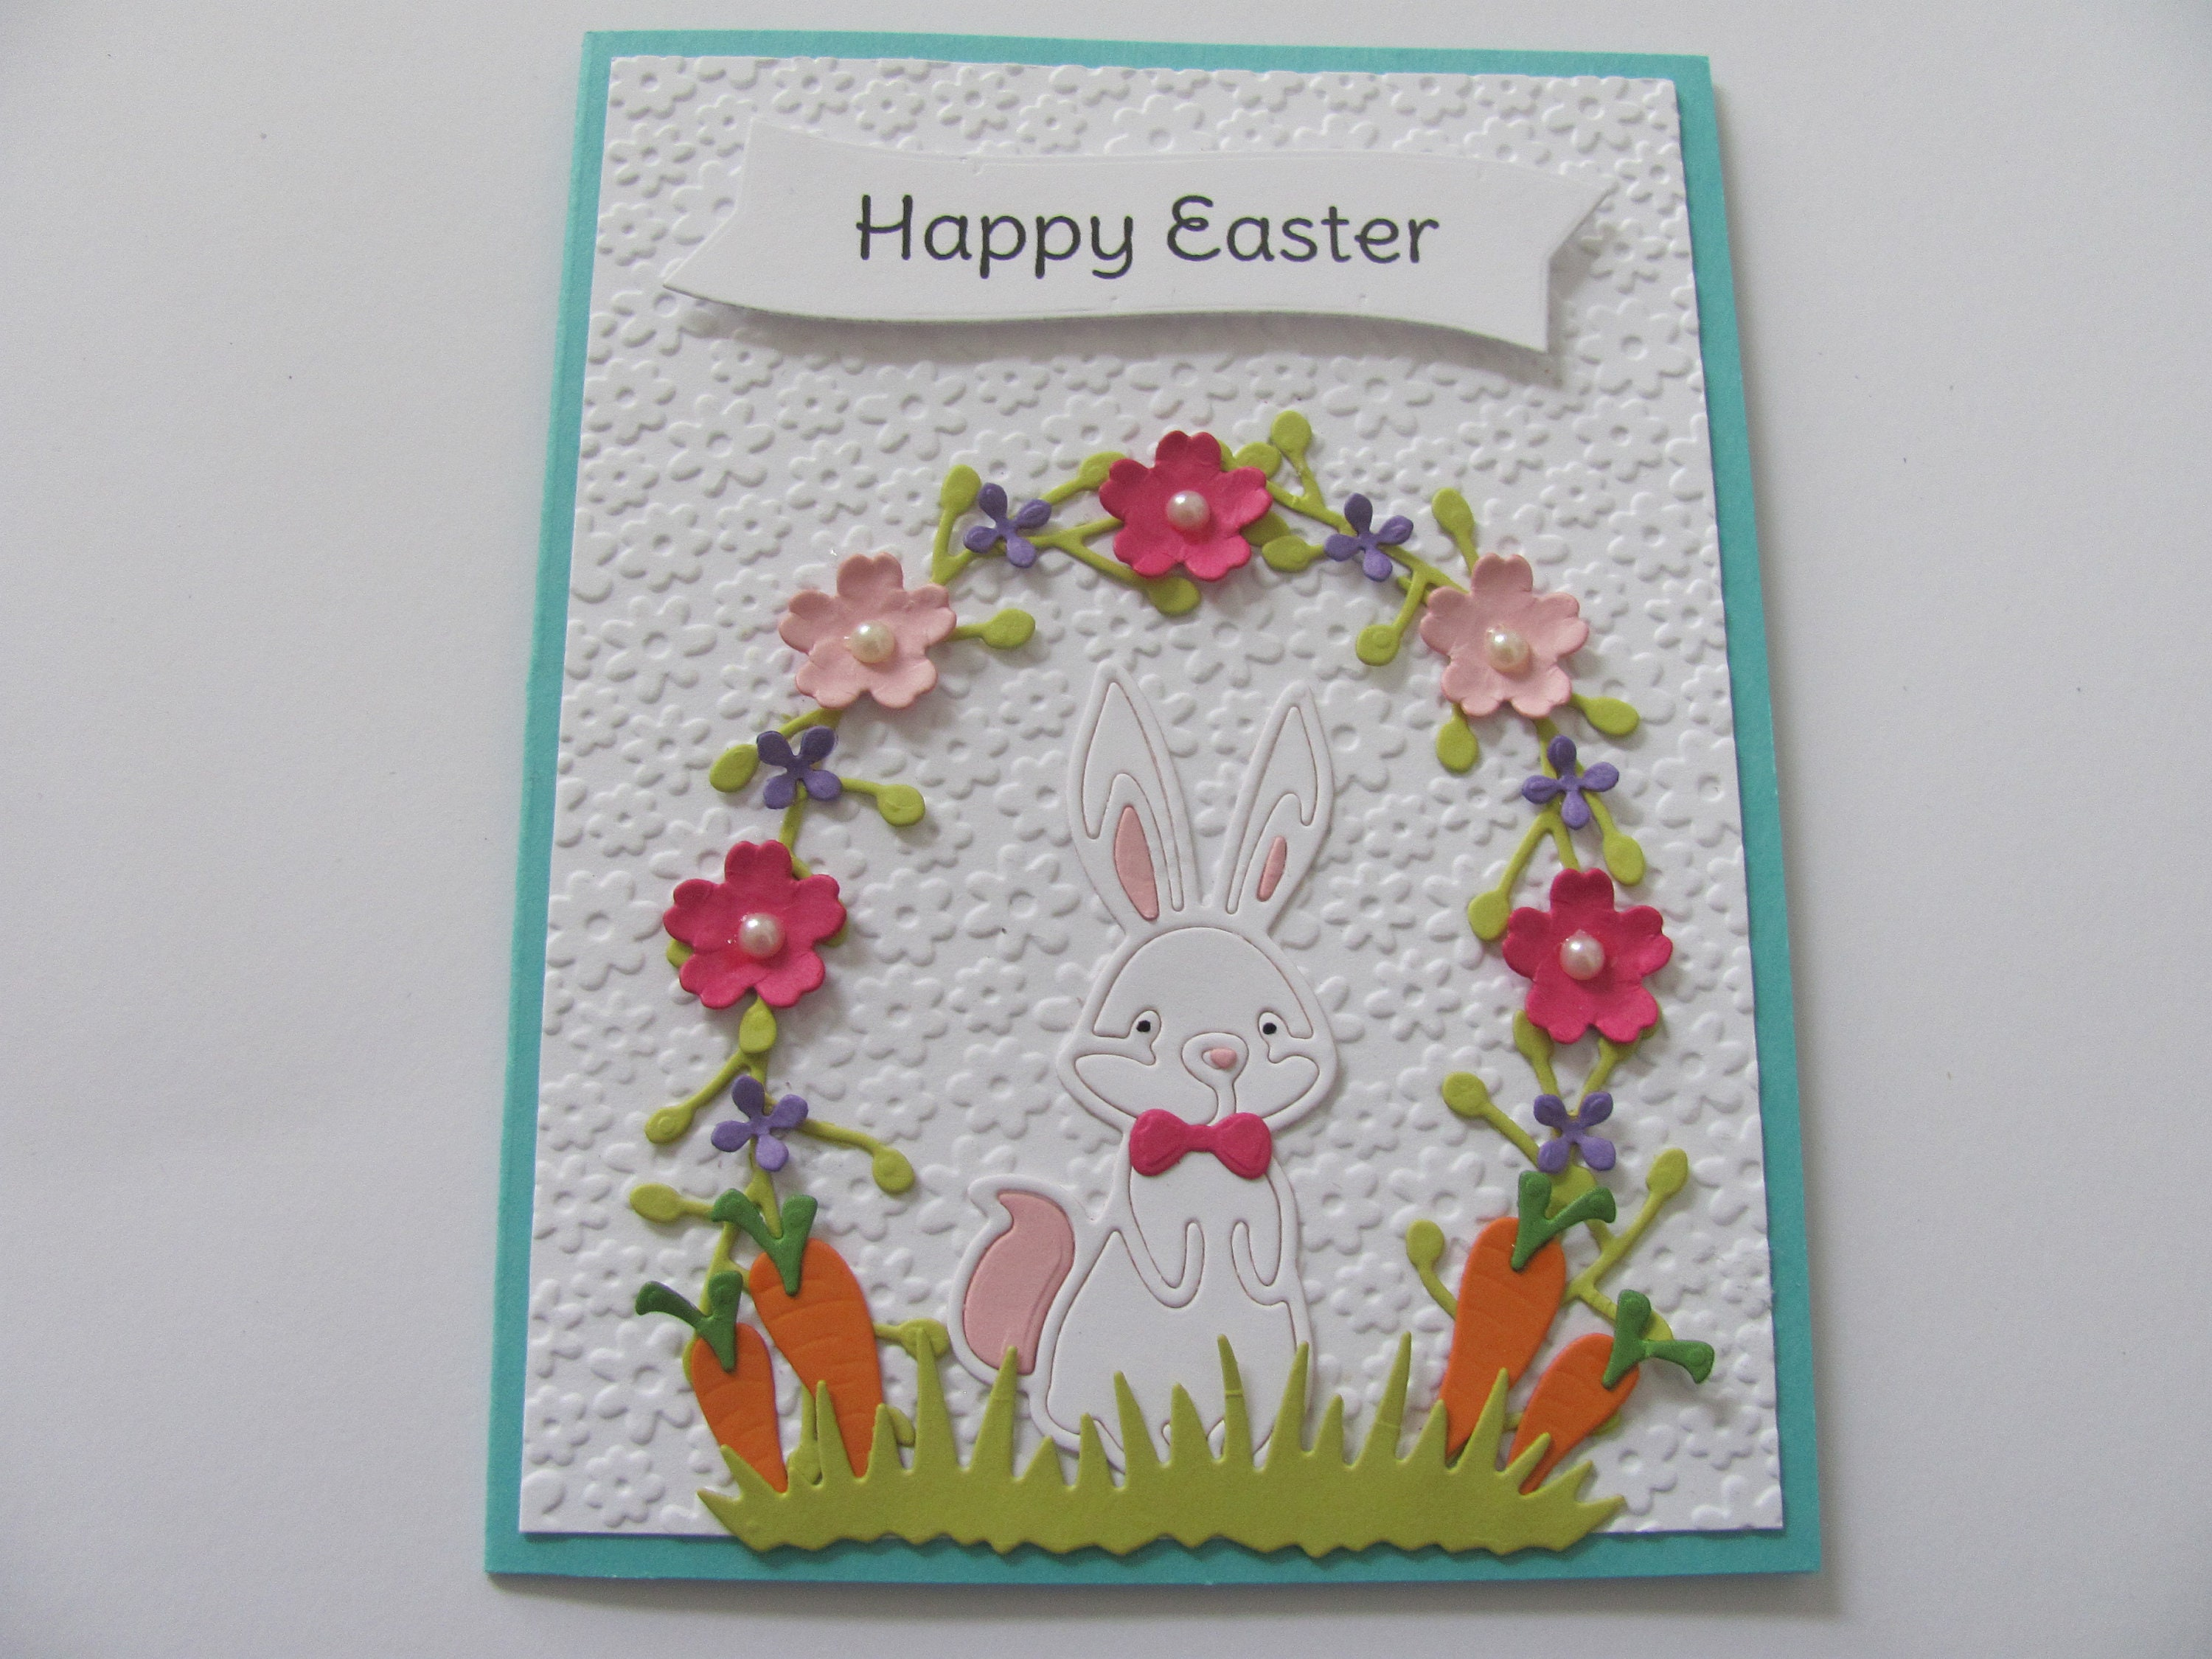 Easter Bunny Card, Easter Card, Happy Easter Bunny Card, Bunny Cards, Spring Celebrations, Embossed Easter Card, Bunny Rabbit Easter Card